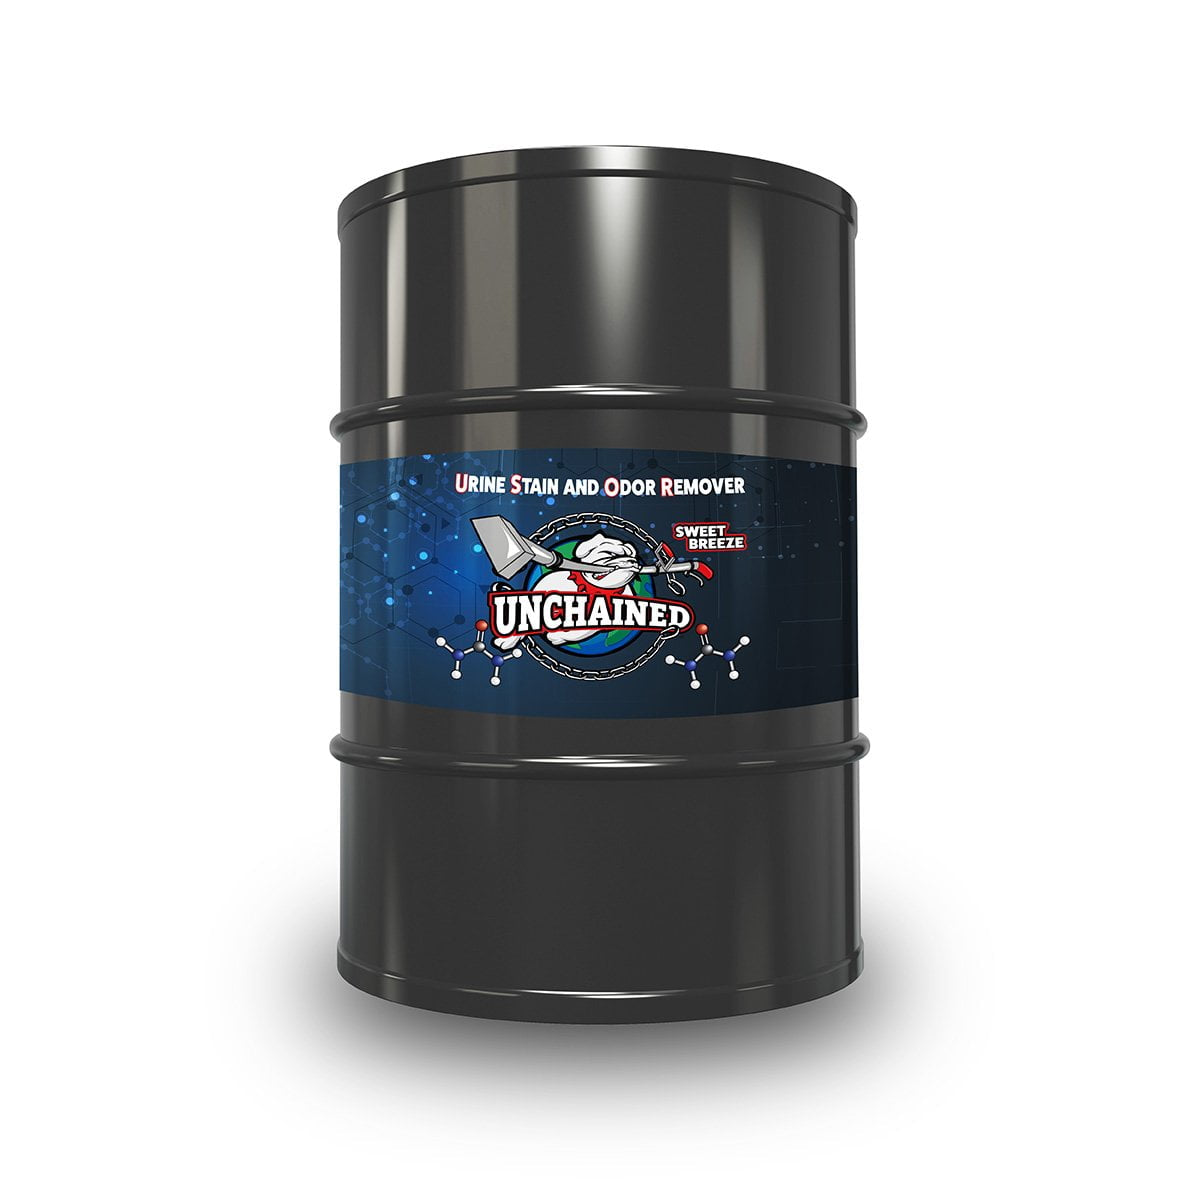 Unchained Sweet Breeze 55 gallon DRUM